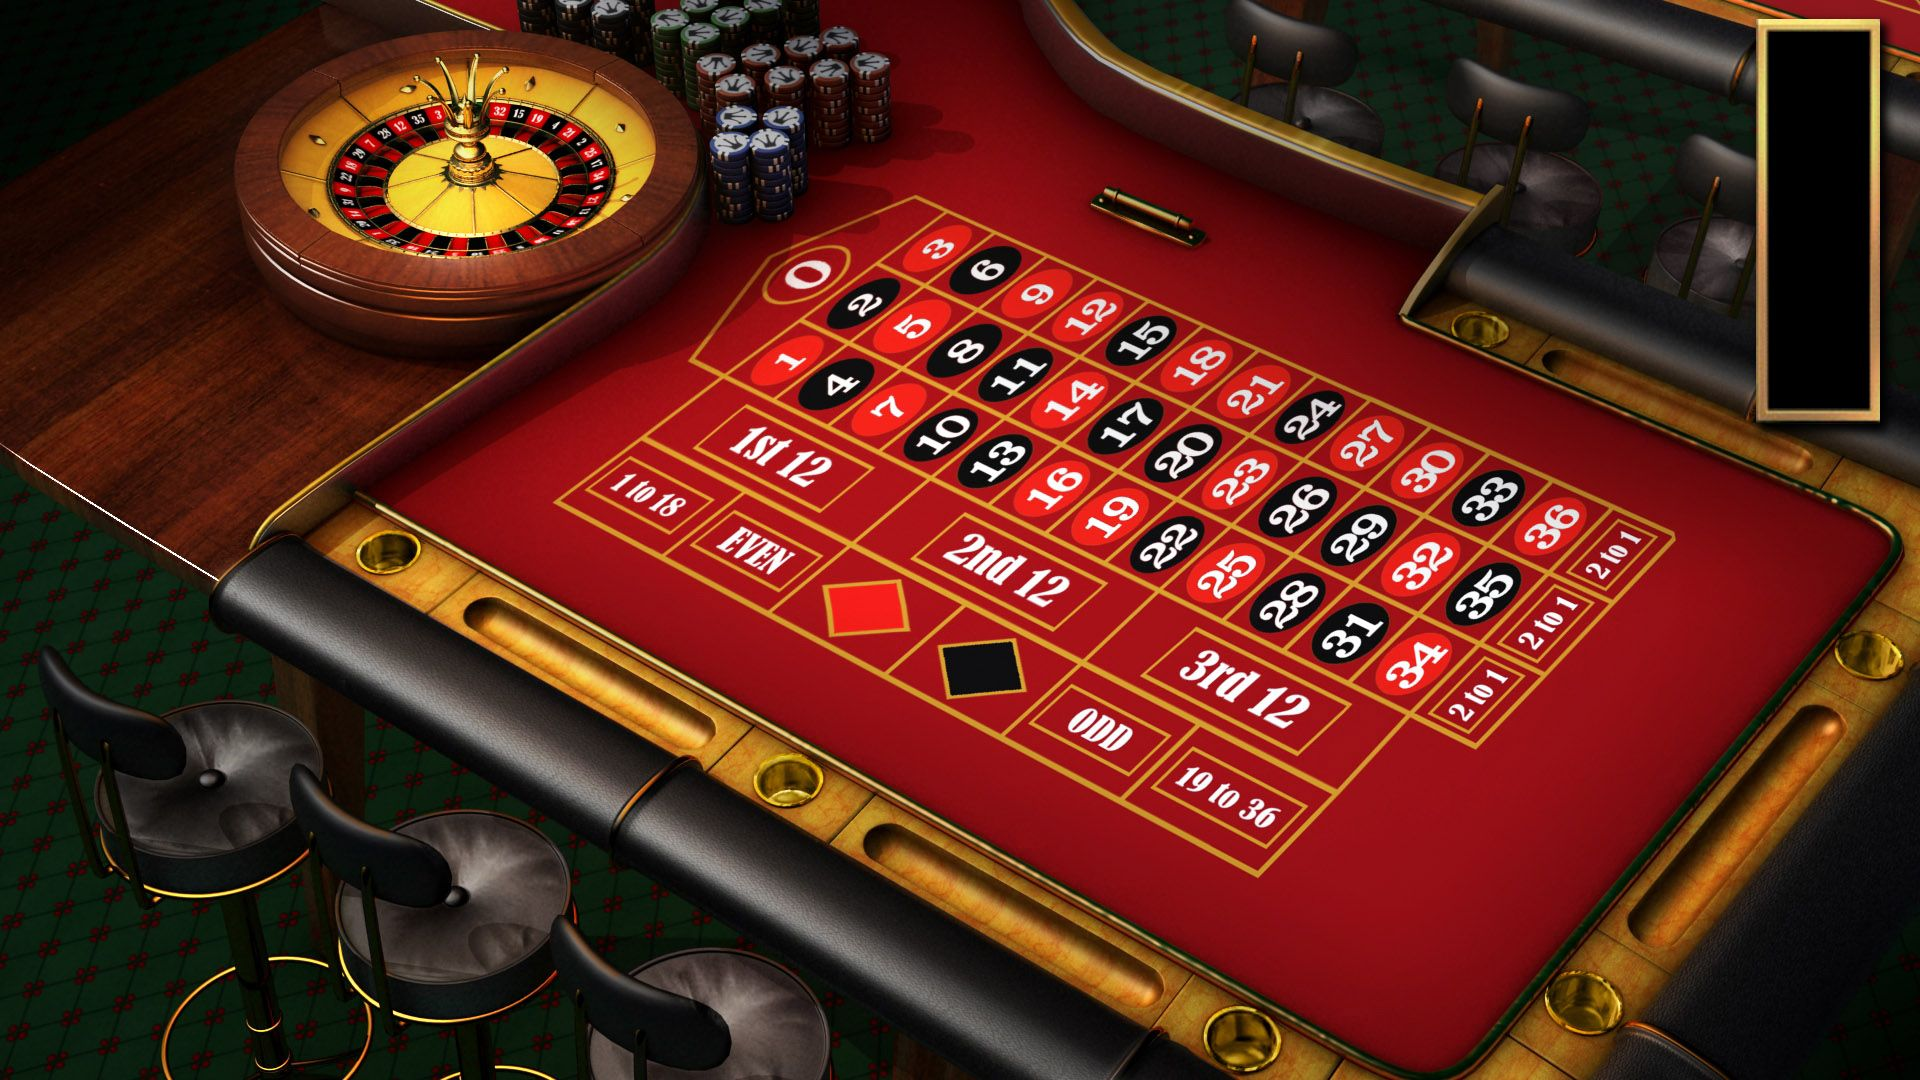 Enter the official website and enjoy the Pkv games. As well as the big bets made in the system, you can win a lot of money.